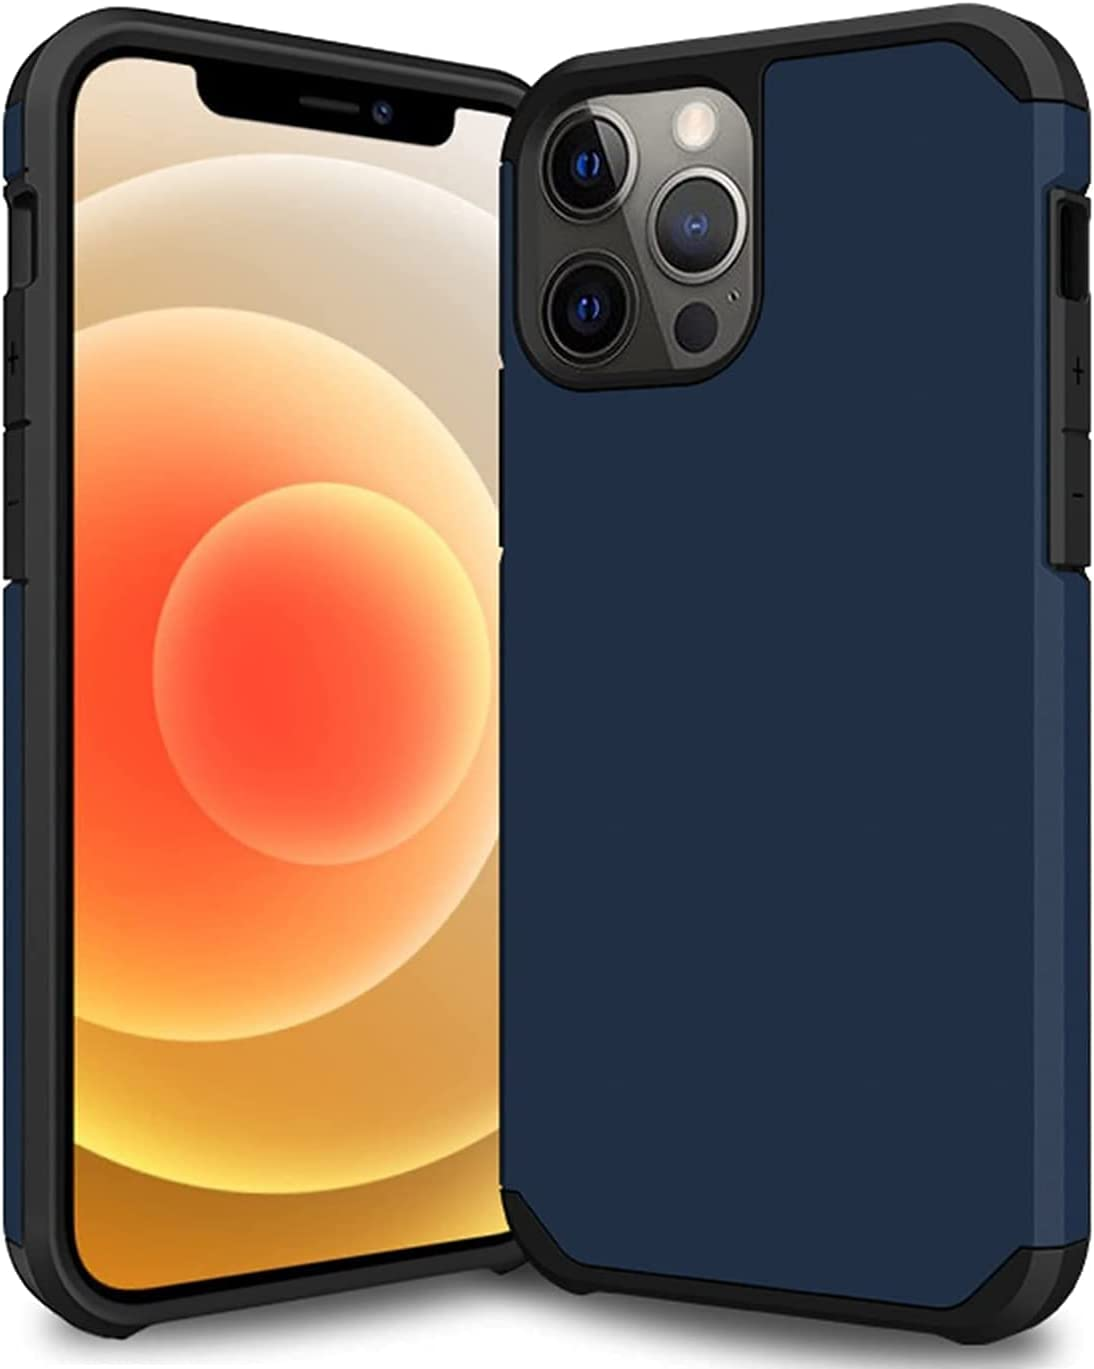 Nyxozonny Phone Case Compatible with iPhone 12 Pro Max(6.7 inch), Smooth Touch Lightweight Slim Full-Body Protective Bumper Case for Men&Women(Navy Blue)